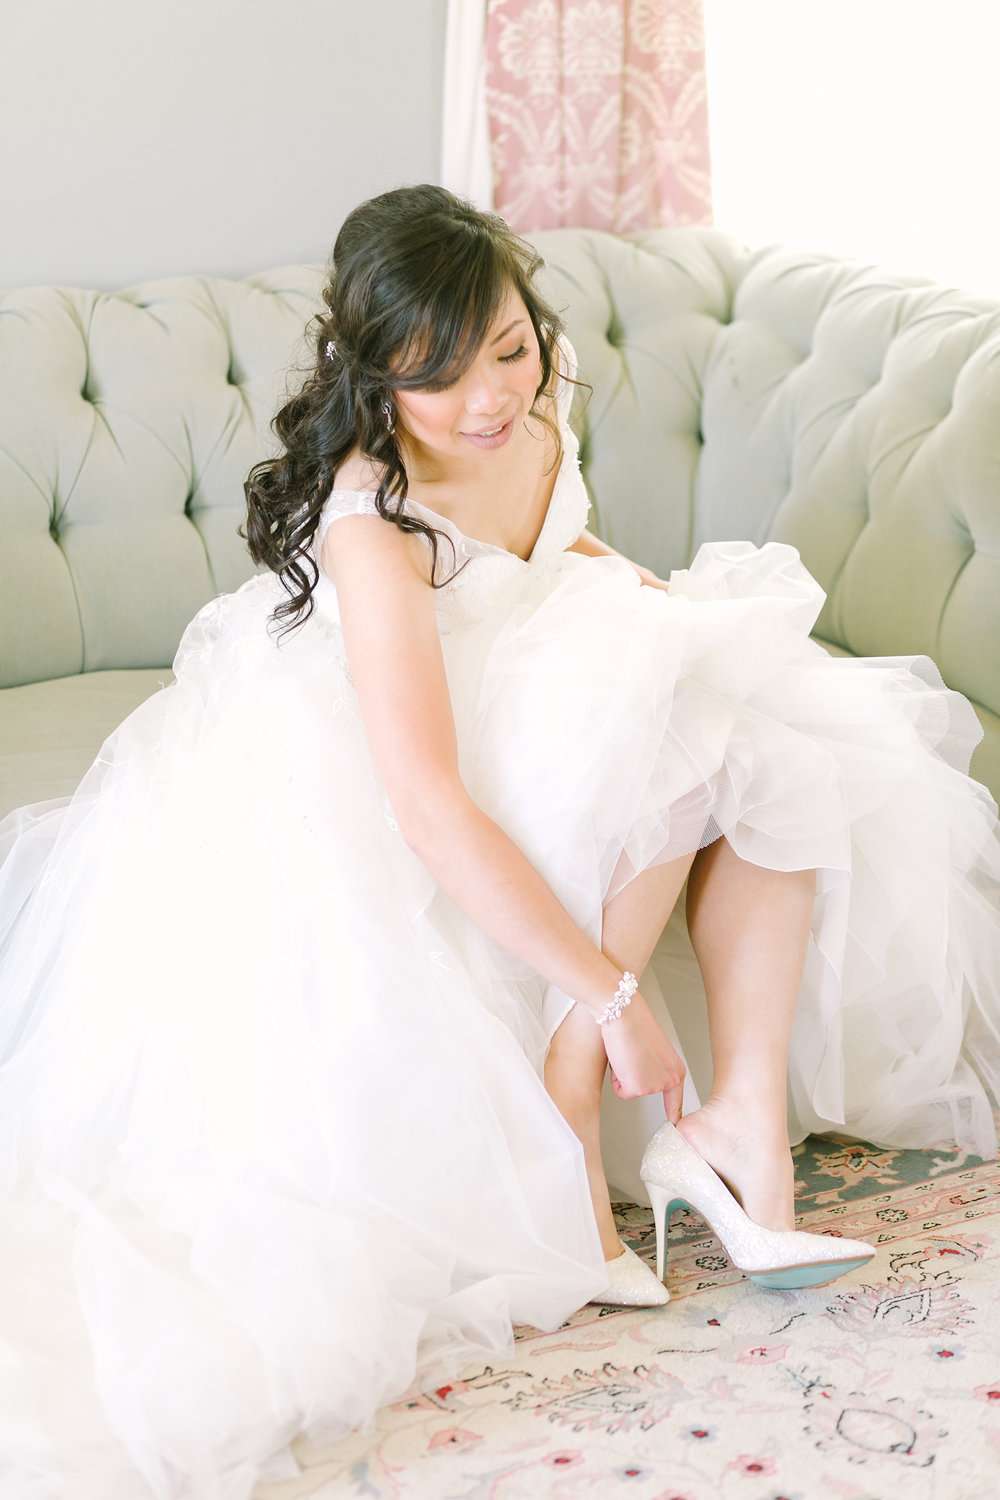 Austin_Wedding_Photographer_Kimberly_Brooke_Photographic_053.jpg